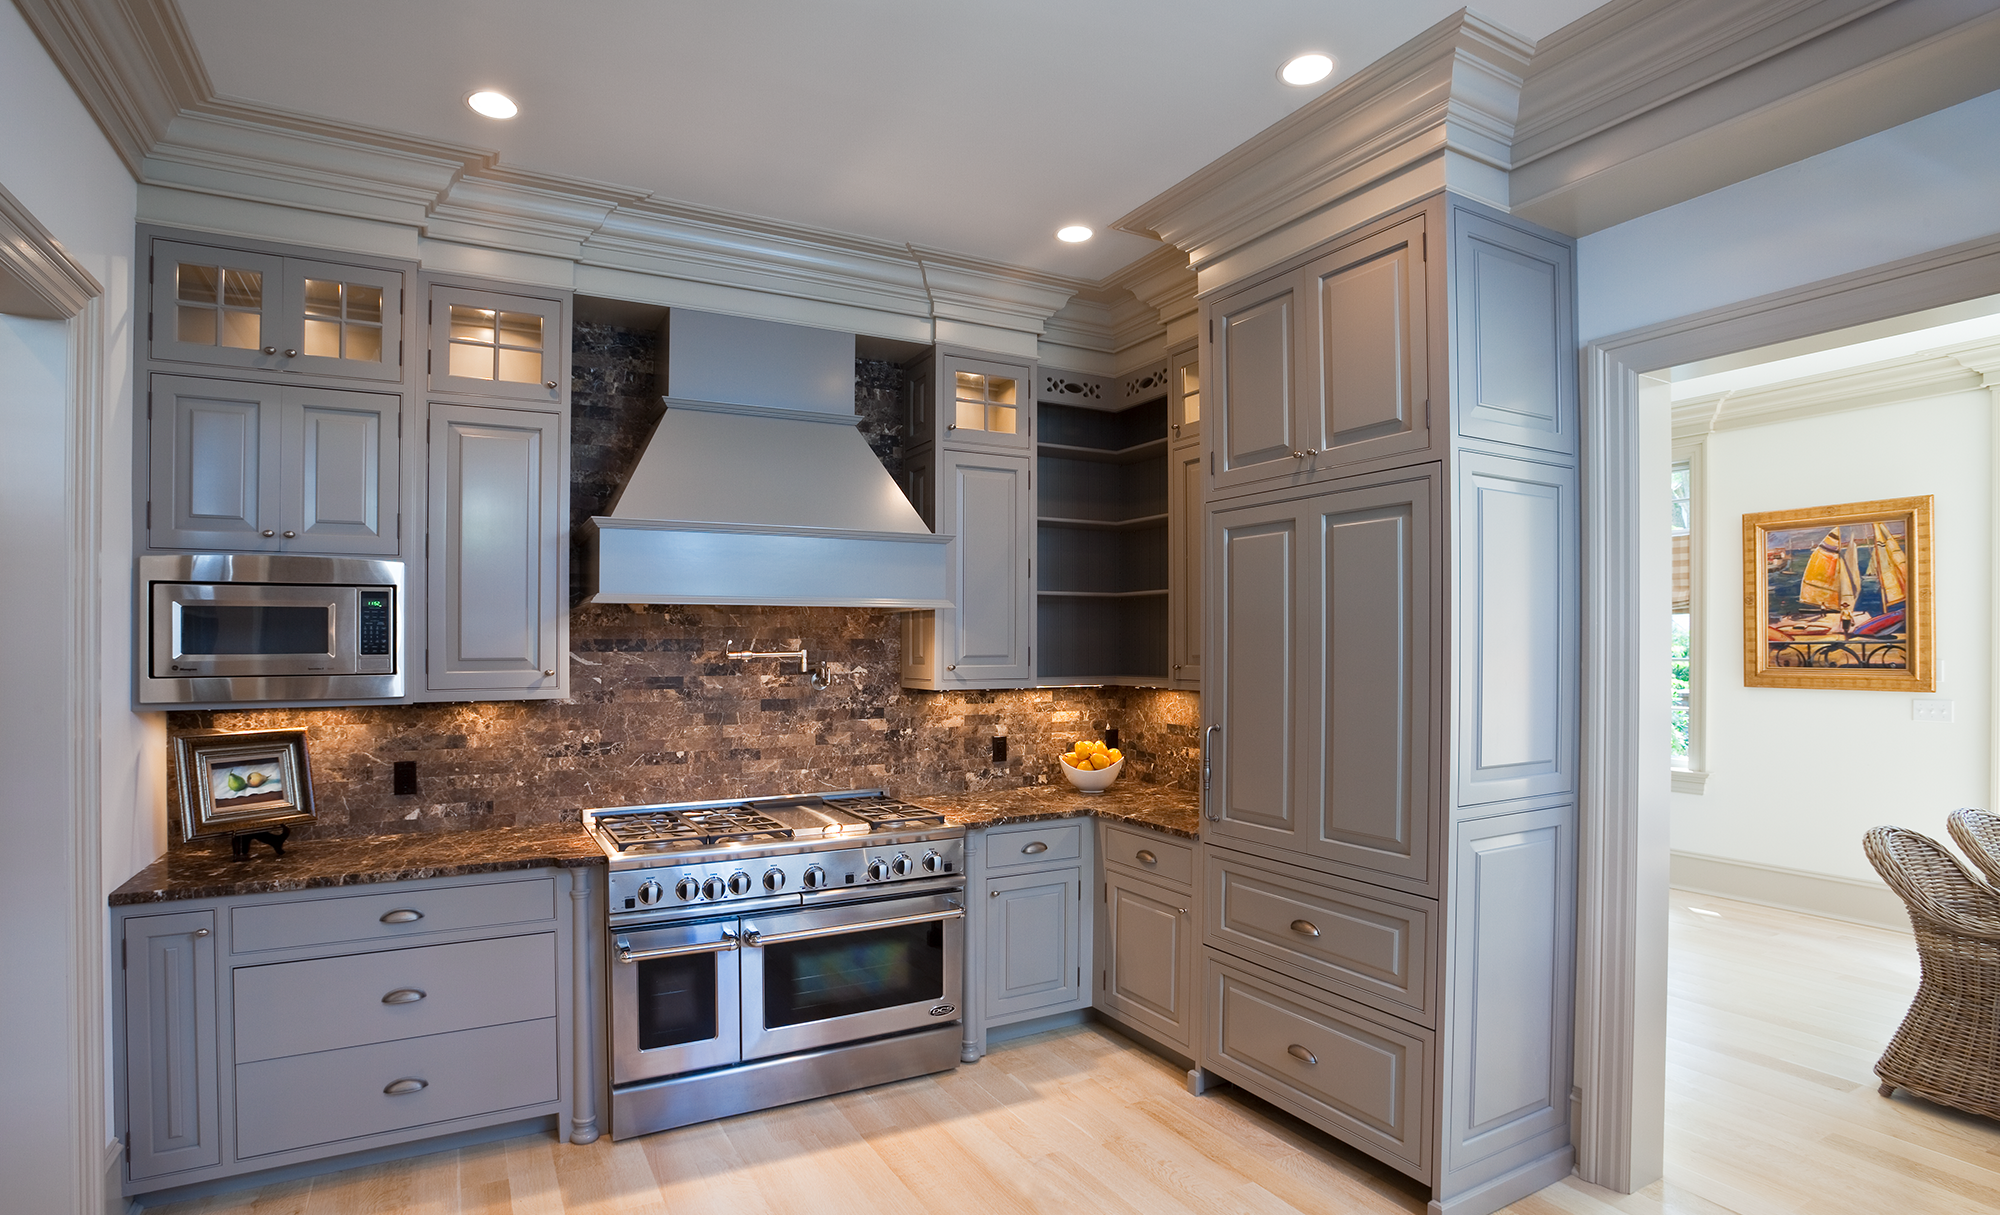 Granite Kitchen Design With an Oven